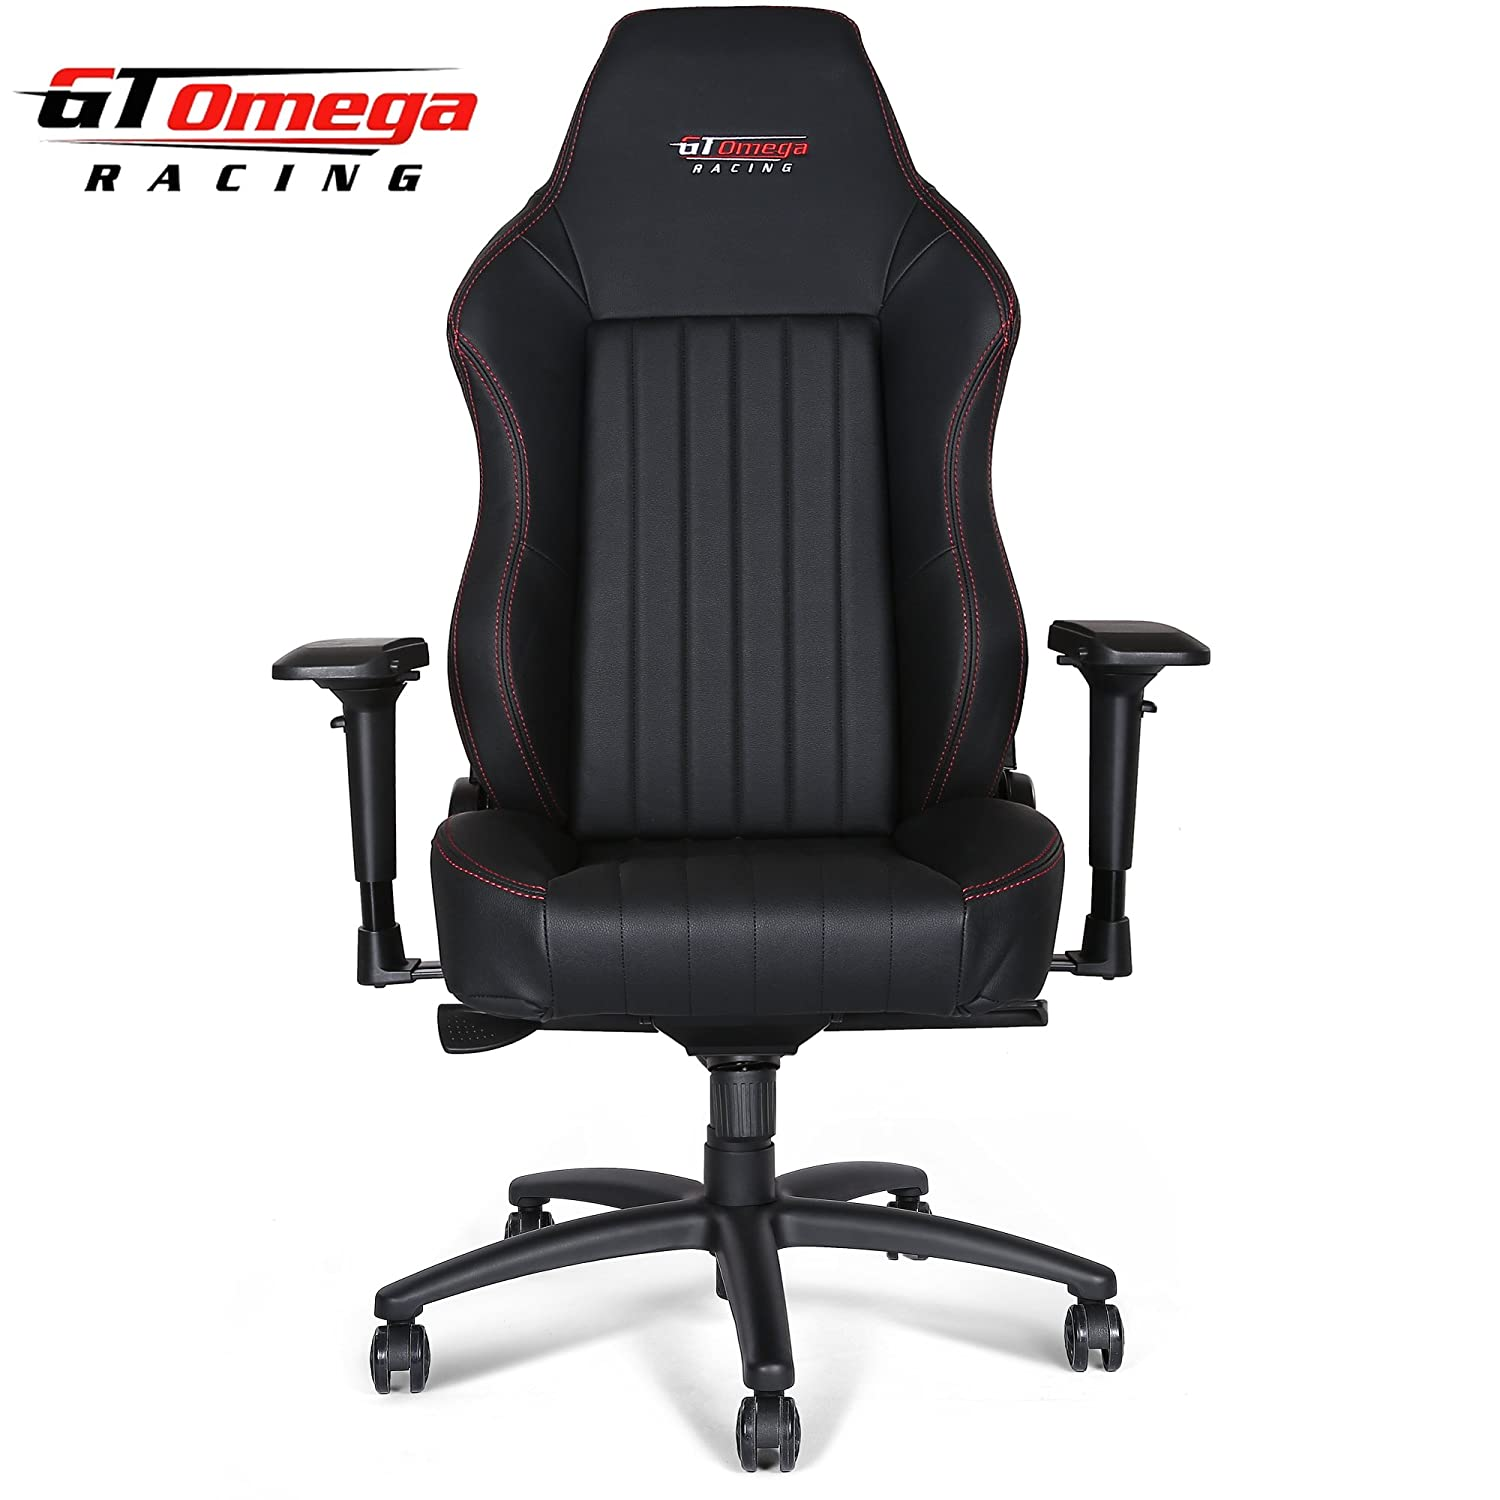 Amazon GT Omega EVO XL Racing fice Chair Black Leather